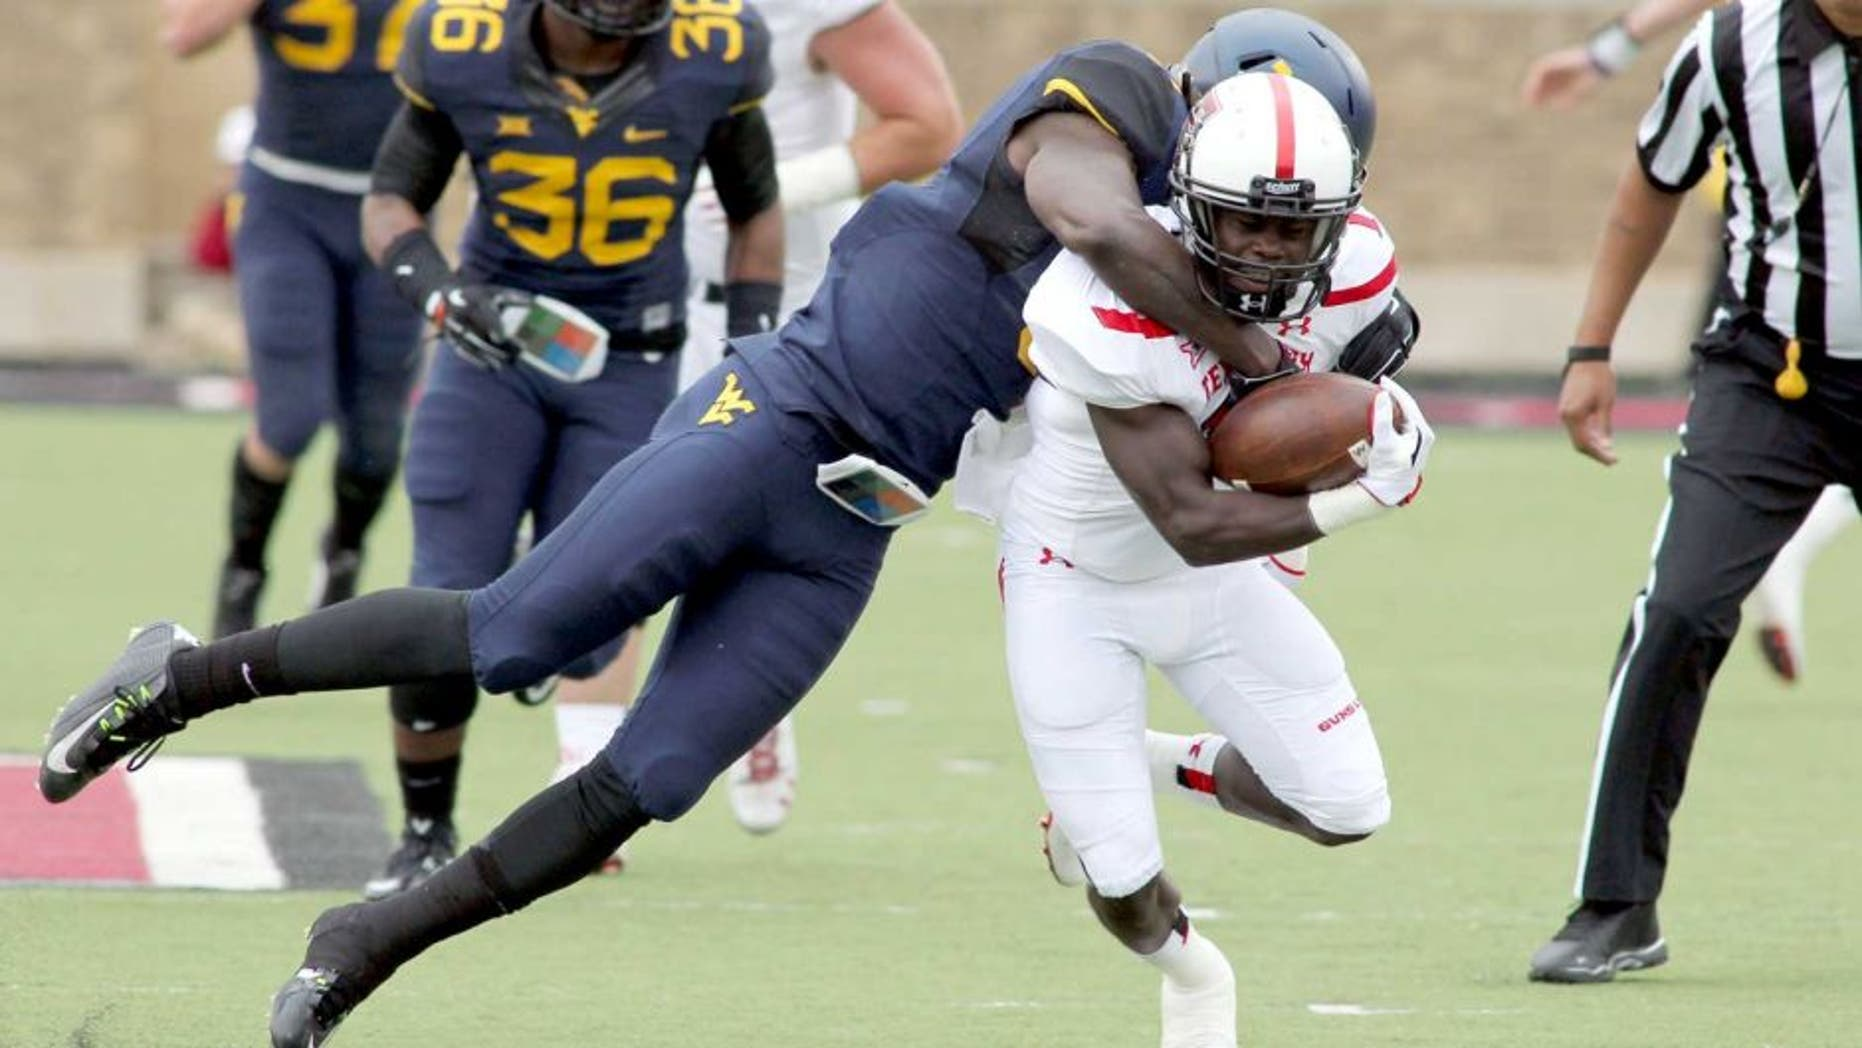 Oct 11, 2014; Lubbock, TX, USA; Texas Tech Red Raiders wide receiver Jakeem Grant (11) is tackled by West Virginia Mountaineers defensive back K.J. Dillion (9) in the first half at Jones AT&T Stadium. Mandatory Credit: Michael C. Johnson-USA TODAY Sports